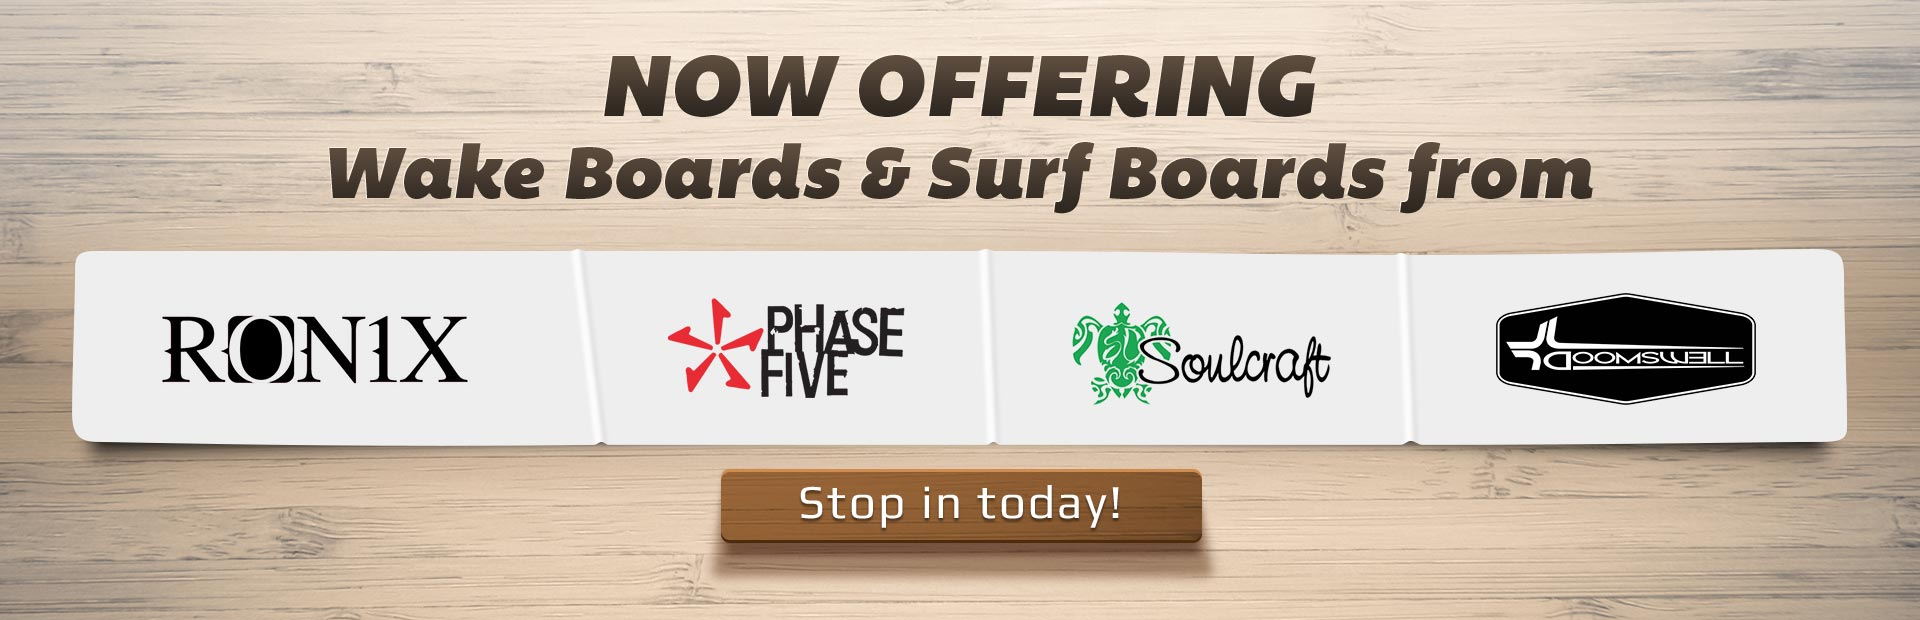 Now Offering Wake Boards & Surf Boards from Ronix, Phase Five, Soulcraft, and Doomswell: Stop in today!